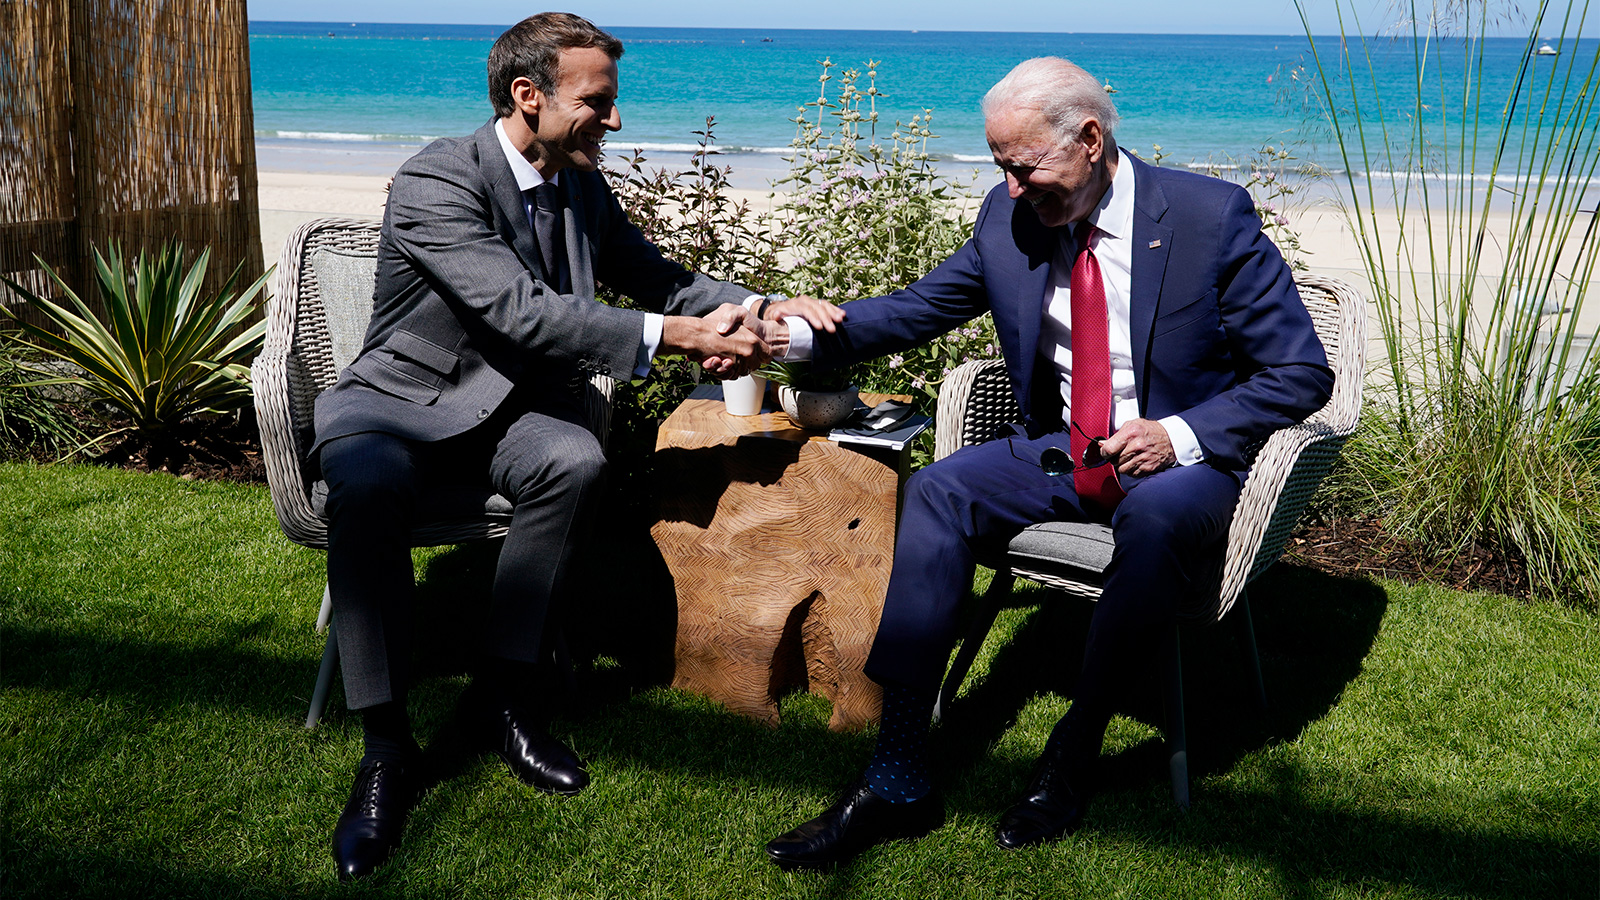 President Joe Biden and French President Emmanuel Macron visit during a bilateral meeting at the G7 summit on Saturday in Carbis Bay, England.